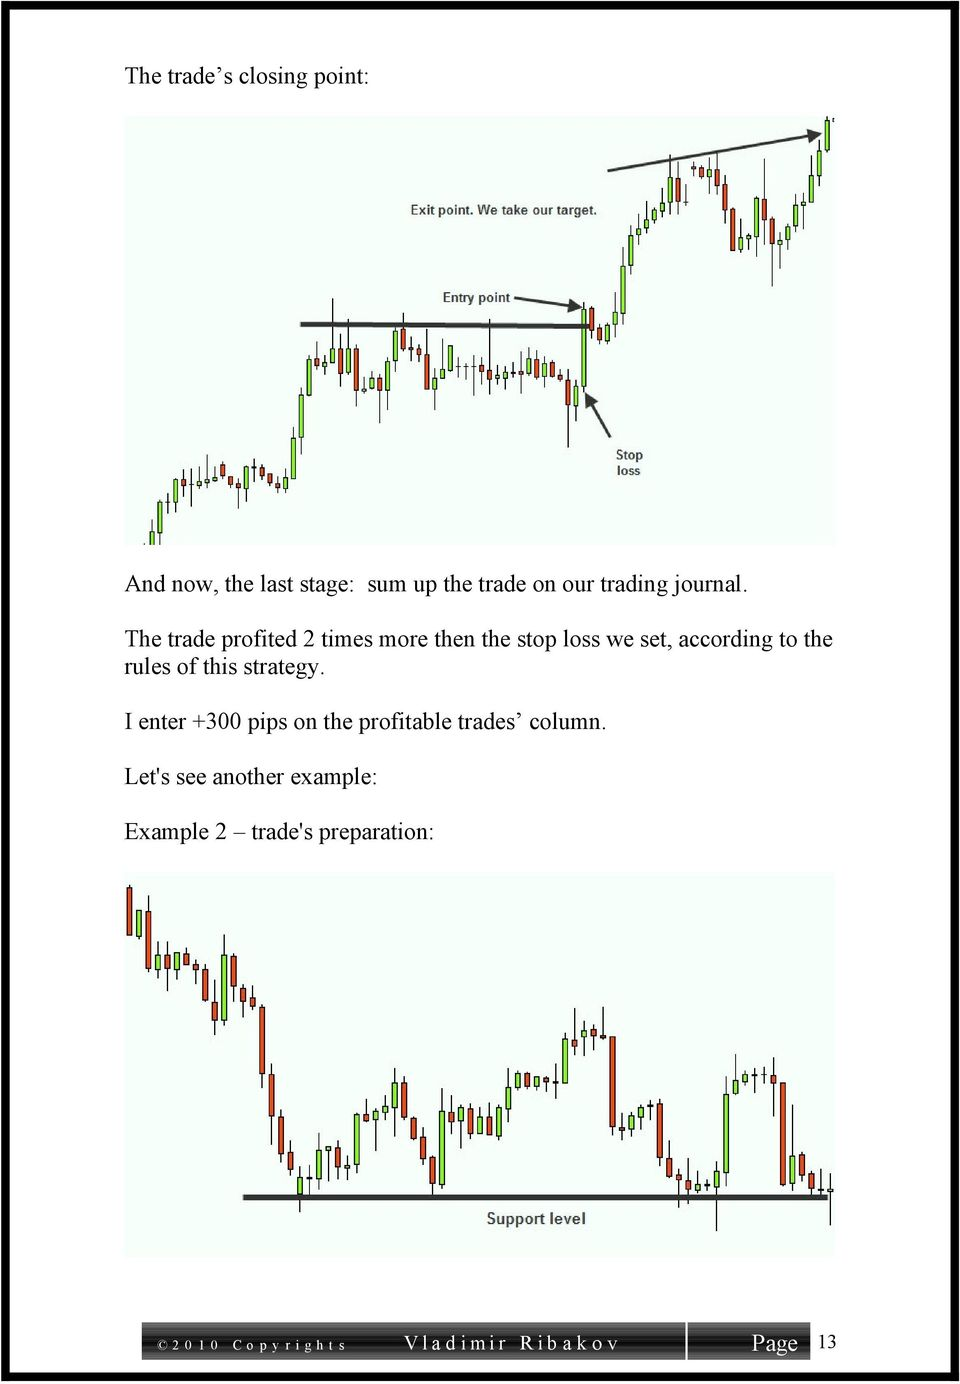 The tade pofited 2 times moe then the stop loss we set, accoding to the ules of this